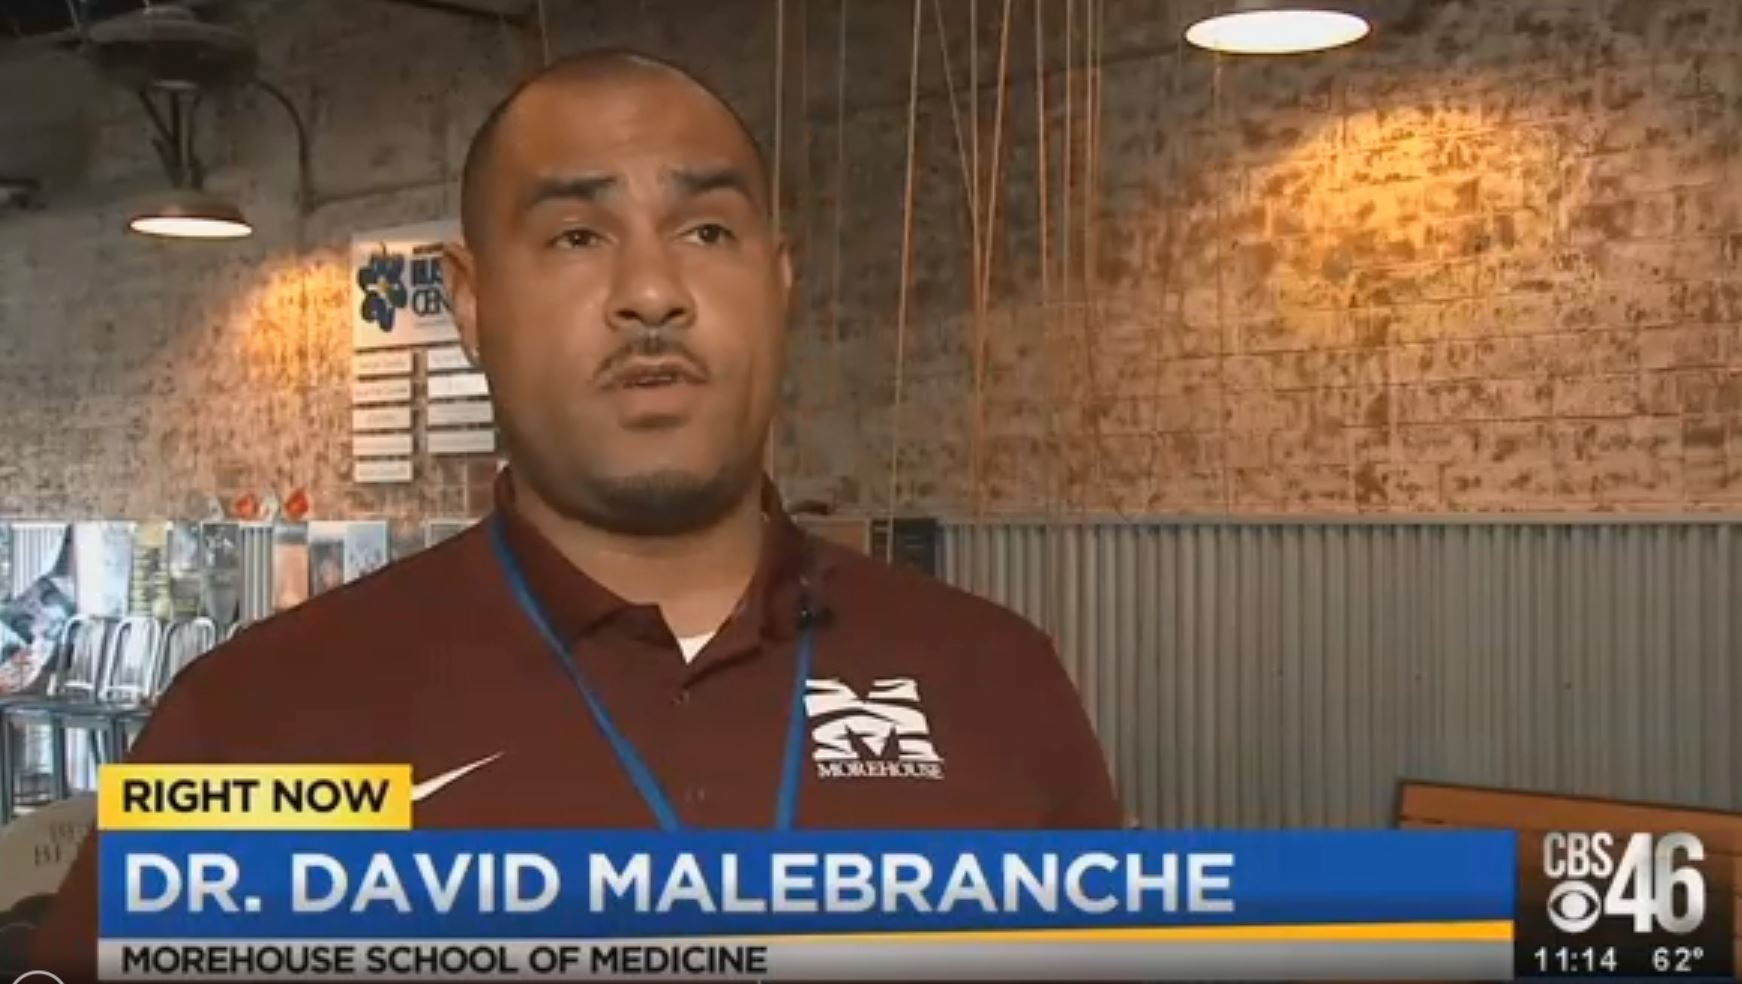 Morehouse School of Medicine's Dr. David Malebranche shares his thoughts with CBS46 about the gay dating app Grindr's new feature that reminds users to get tested and how it could be more effective.